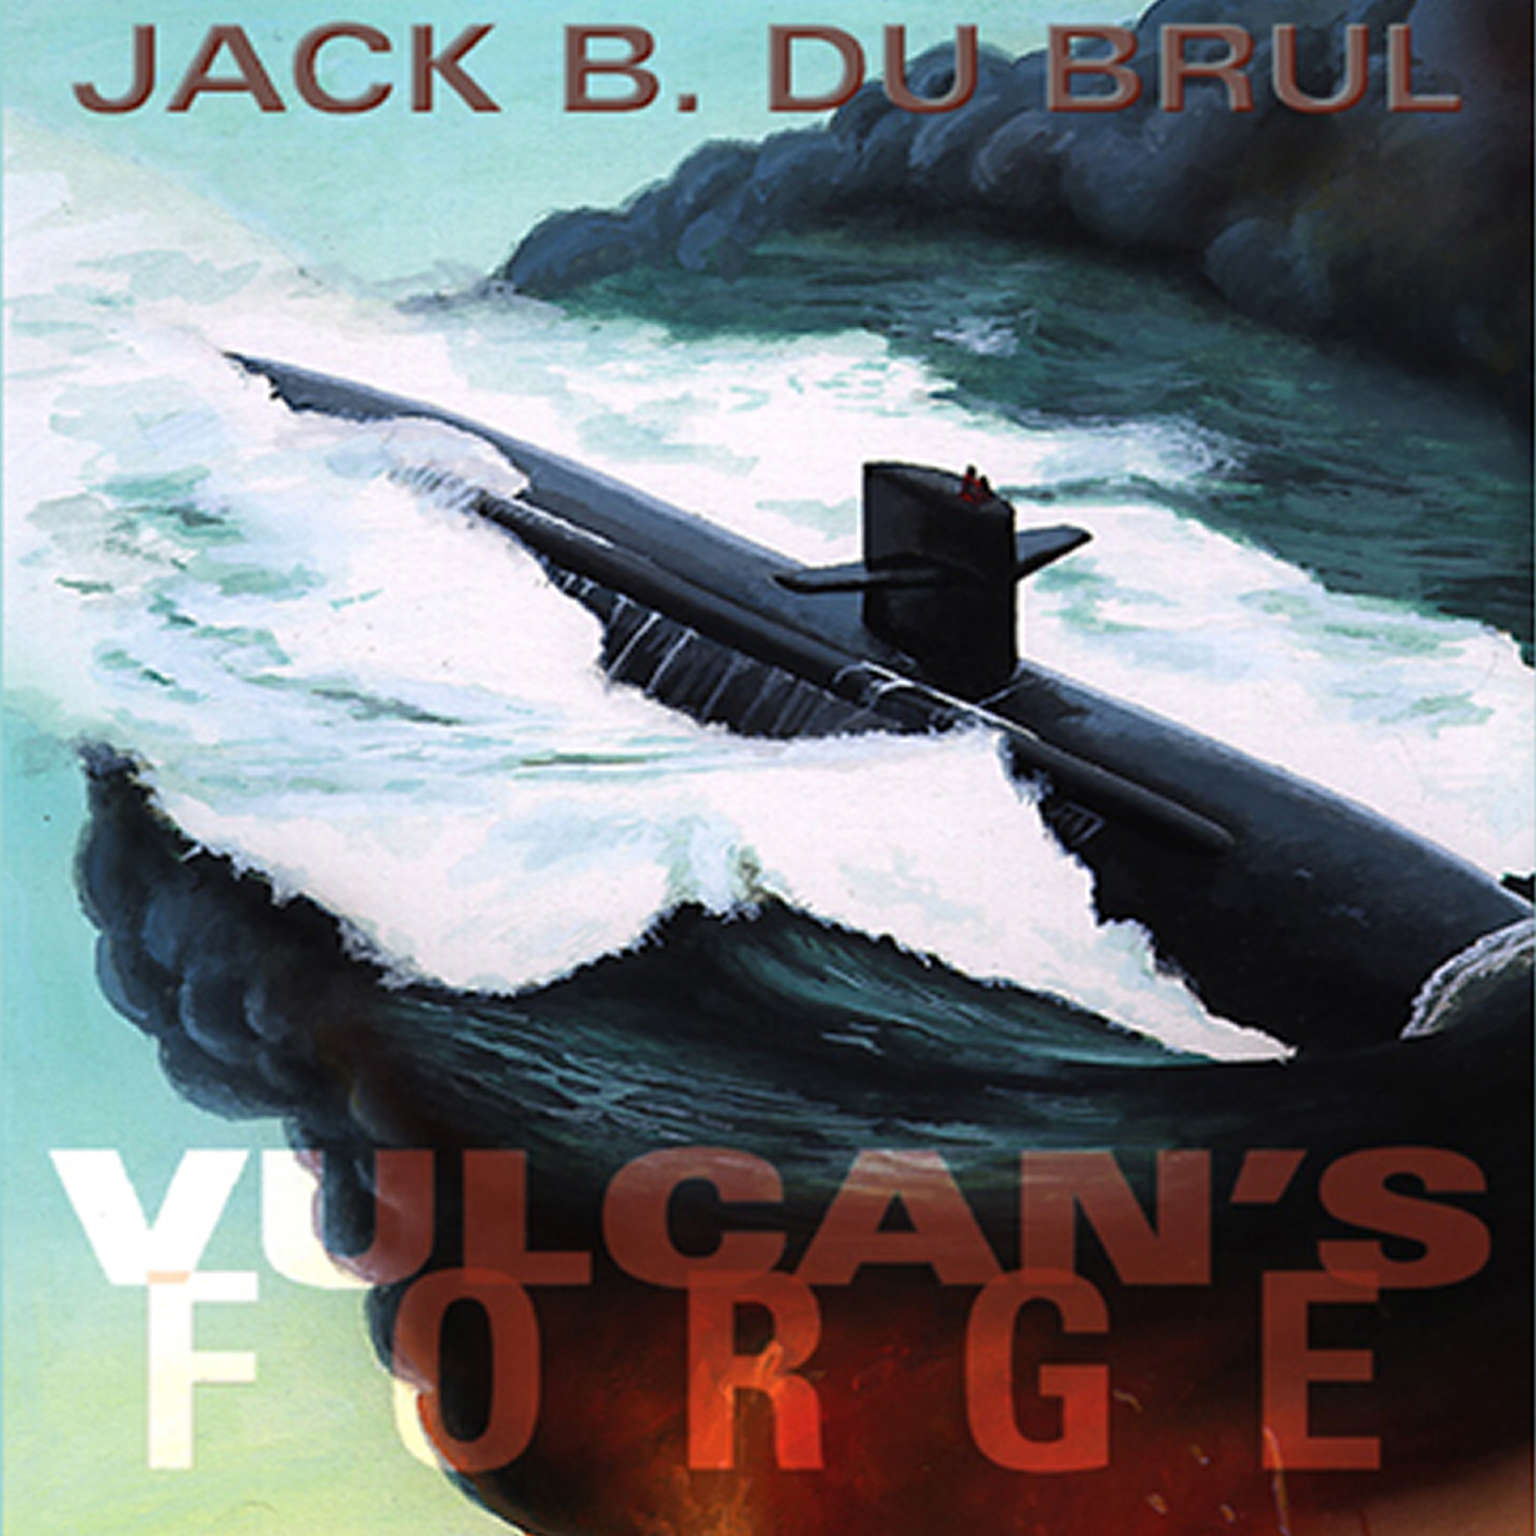 Printable Vulcan's Forge Audiobook Cover Art